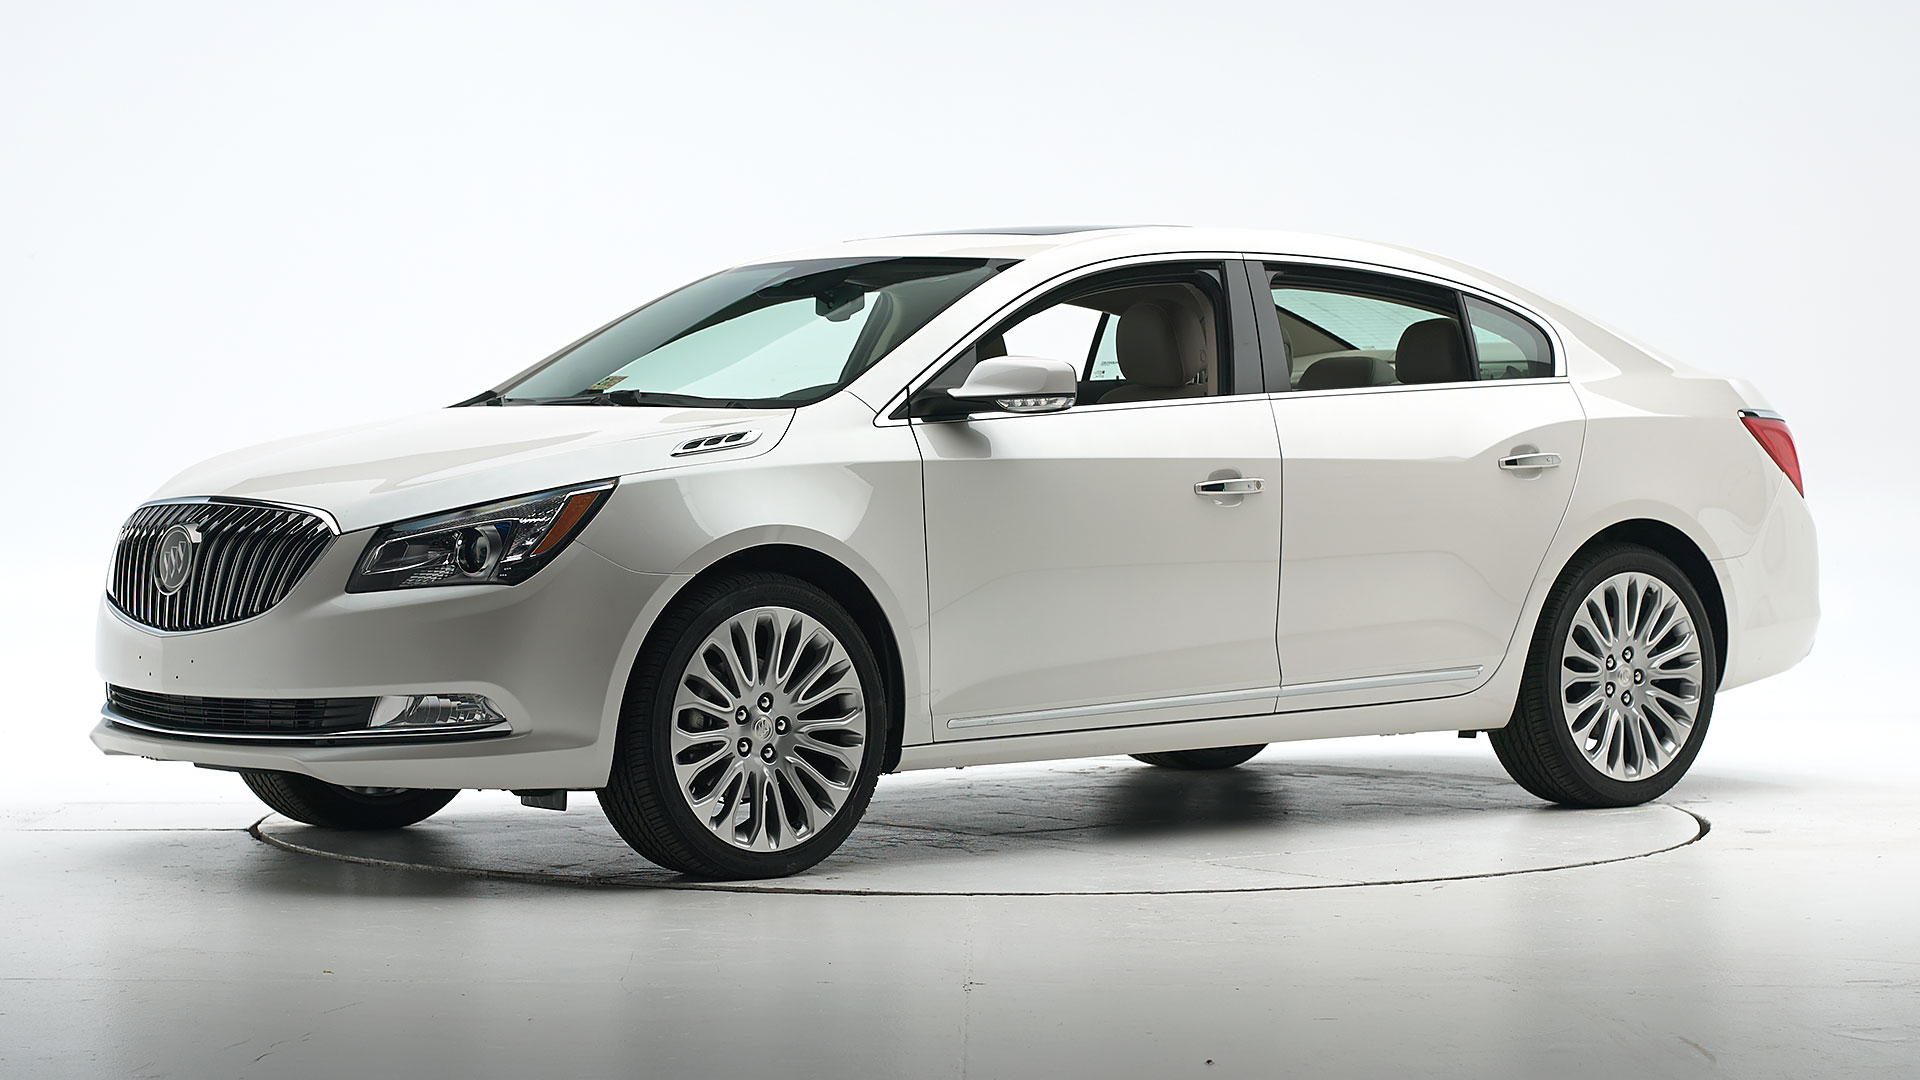 2015 Buick LaCrosse 4-door sedan